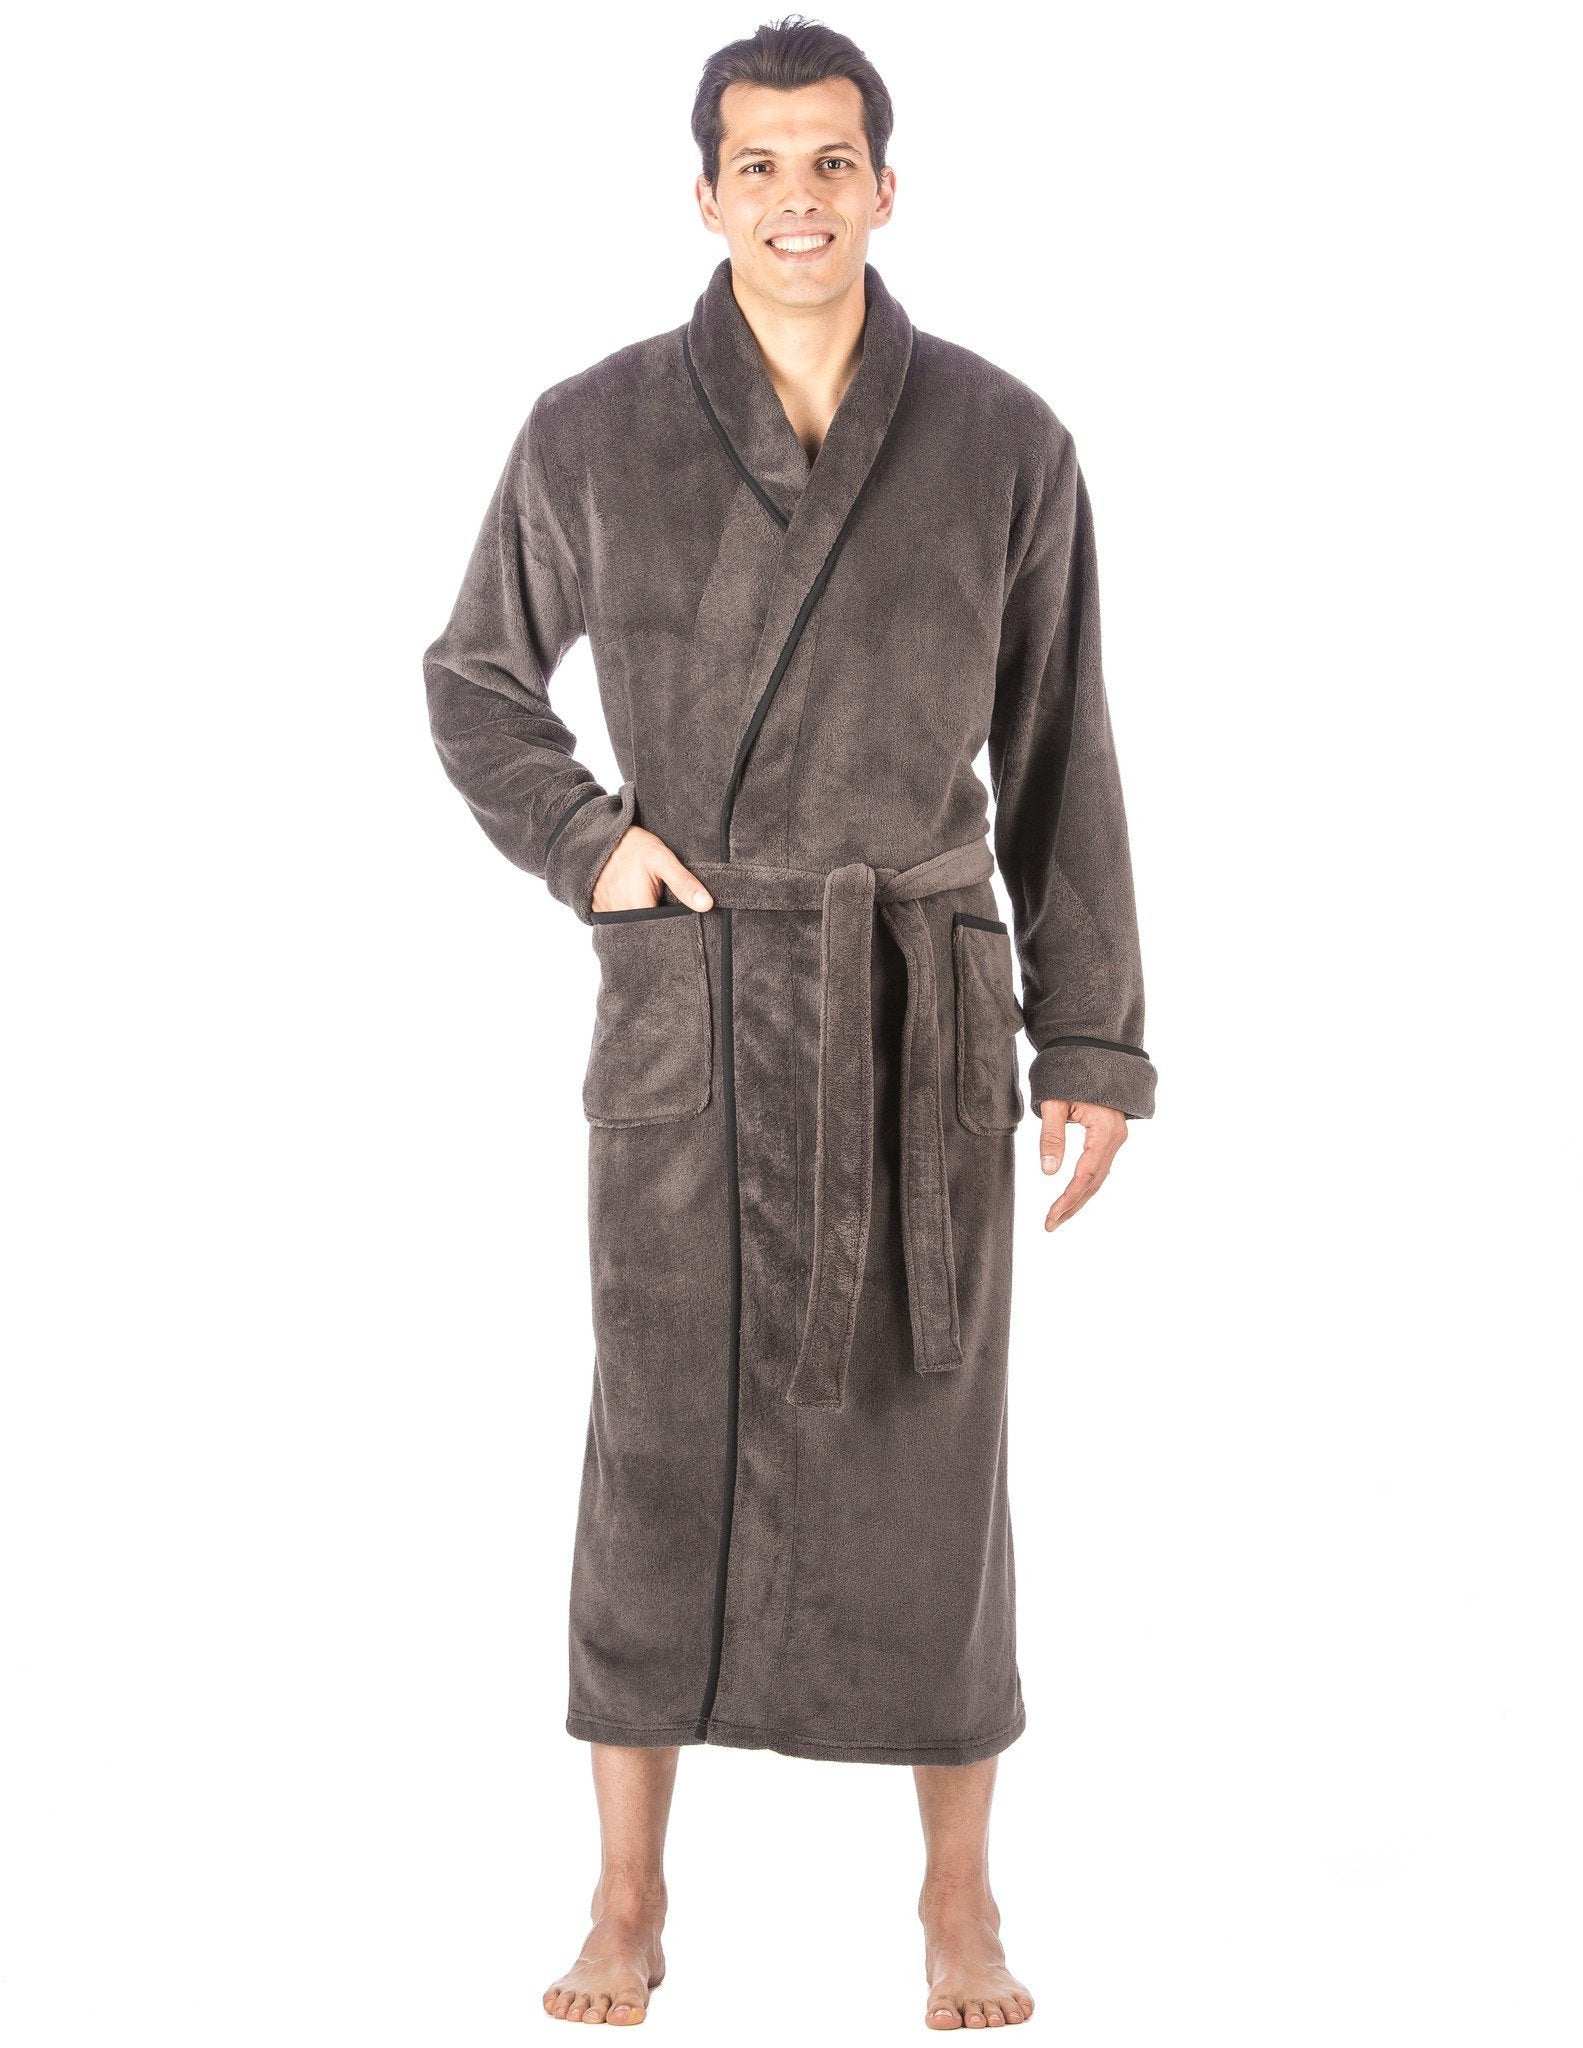 Men's Premium Coral Fleece Full Length Plush Spa/Bath Robe - Dark Grey